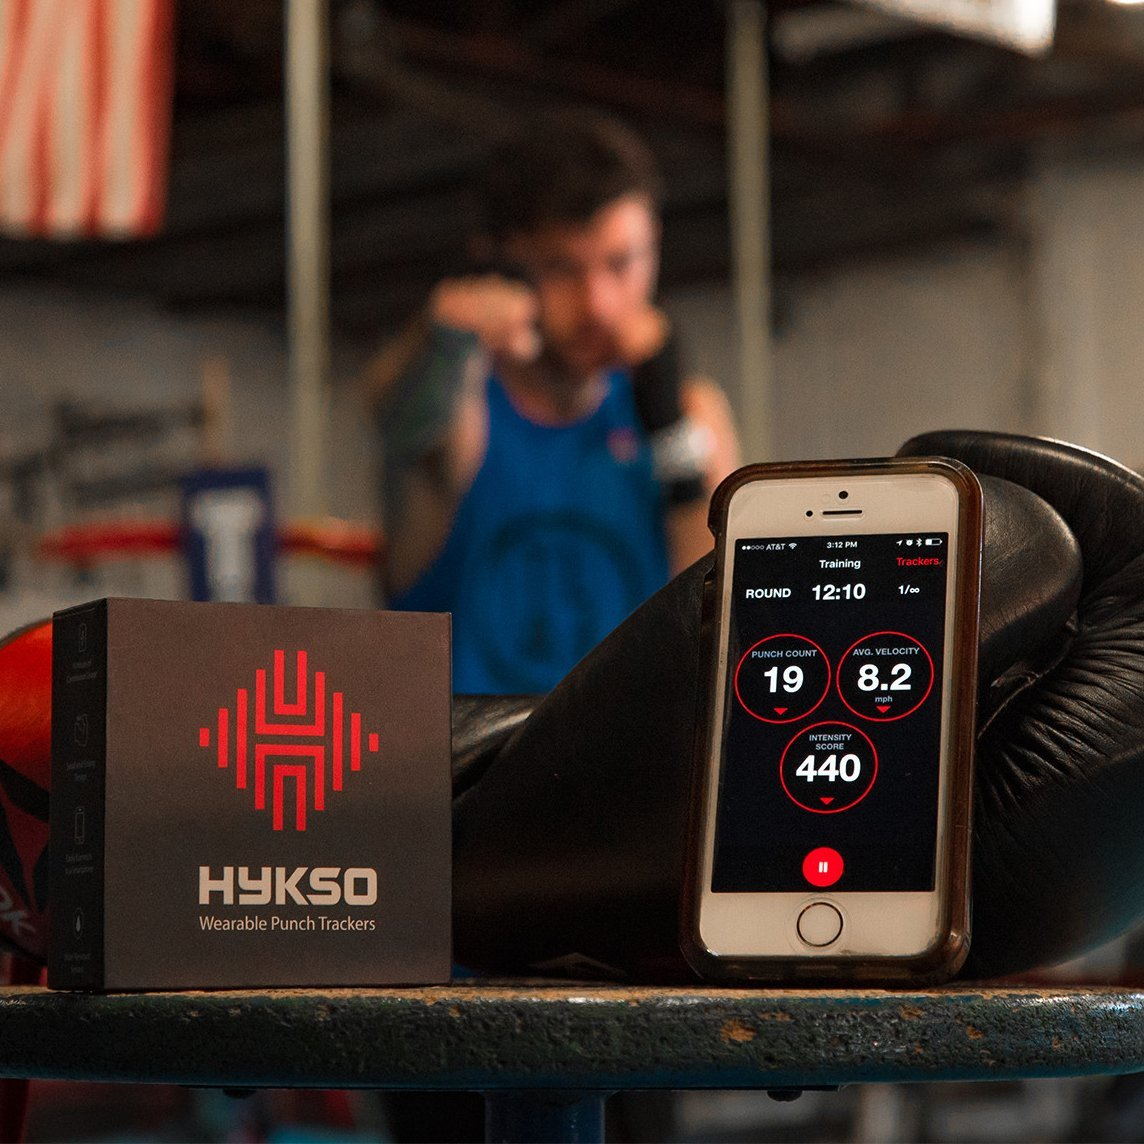 Hykso Wearable Punch Trackers